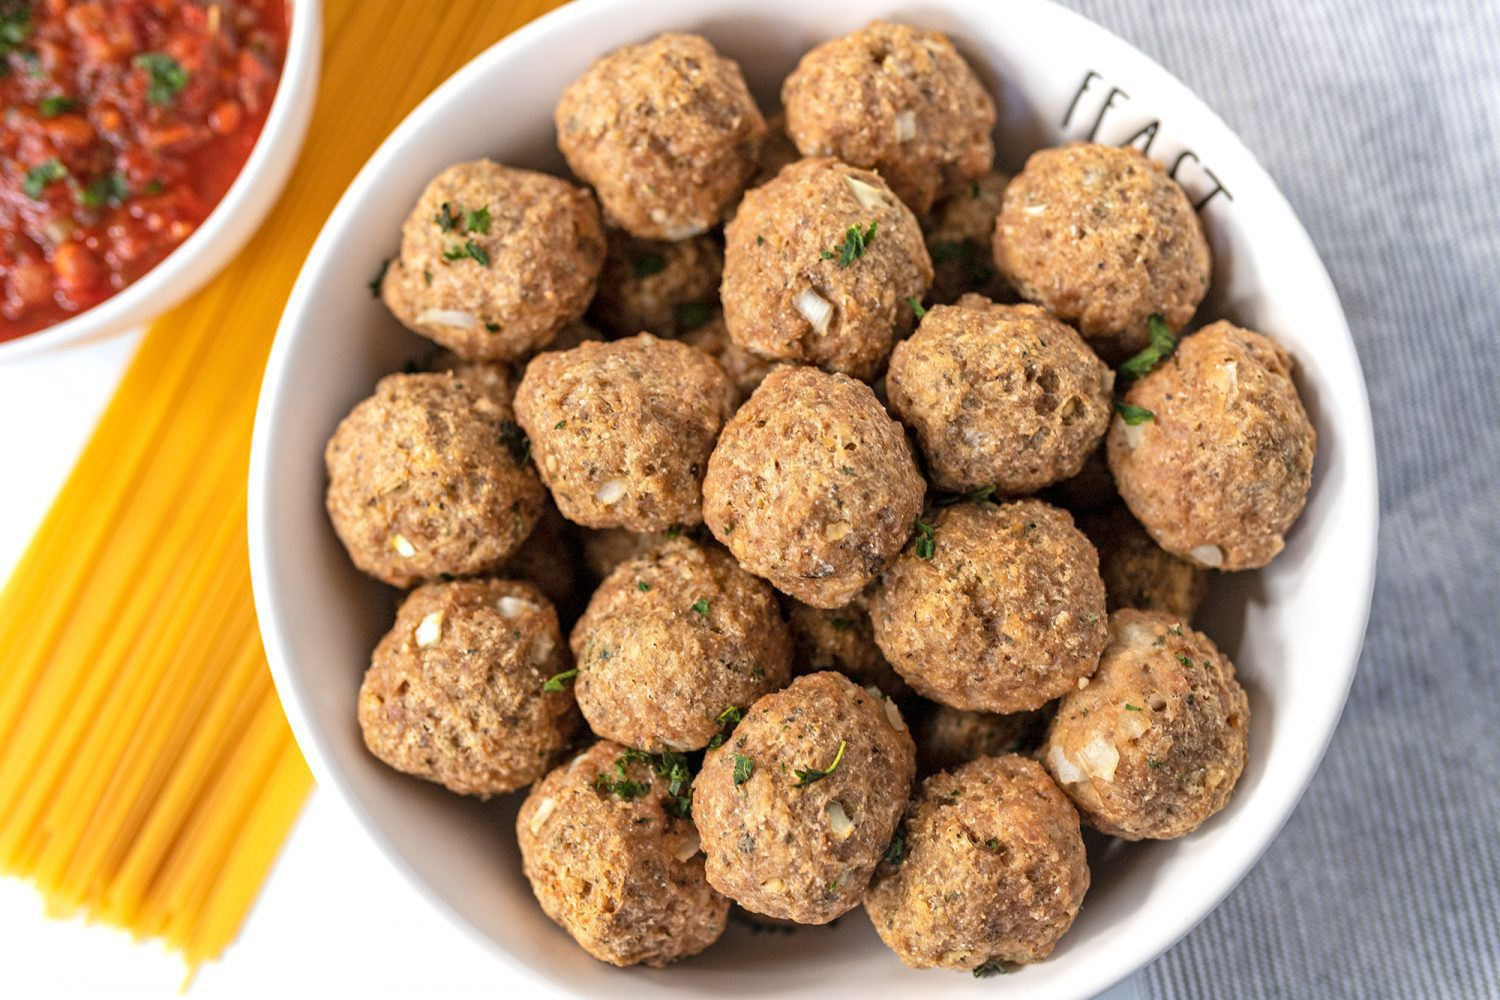 healthier oven-baked meatballs in a bowl next to spaghetti